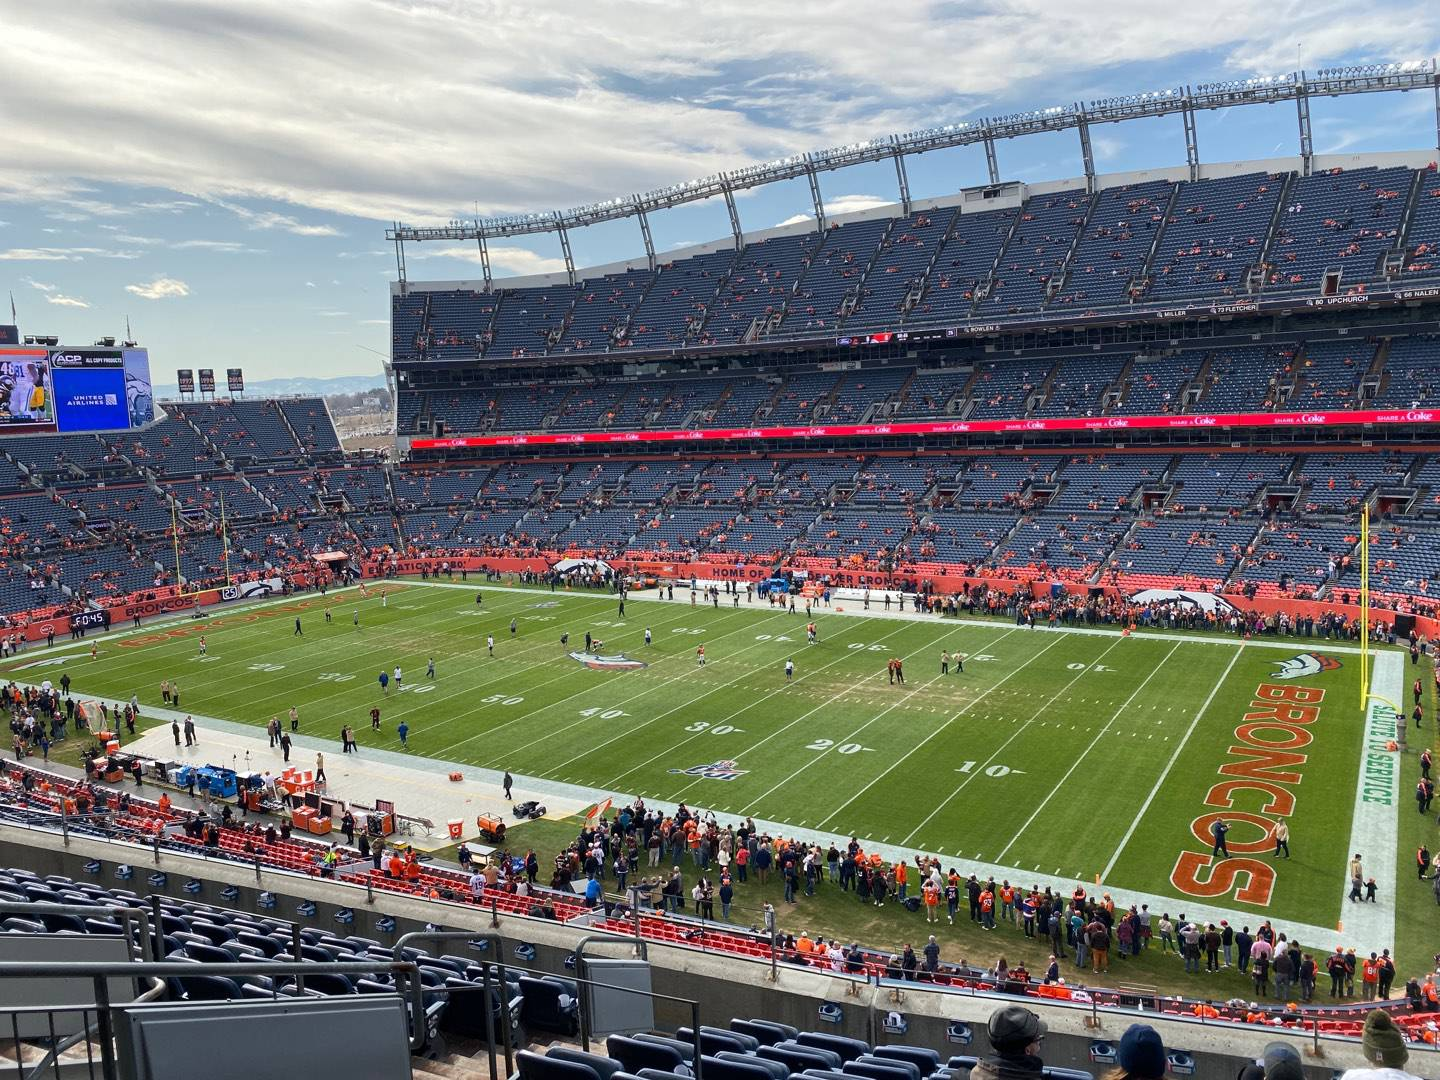 Empower Field at Mile High Stadium Section 331 Rangée 10 Siège 10